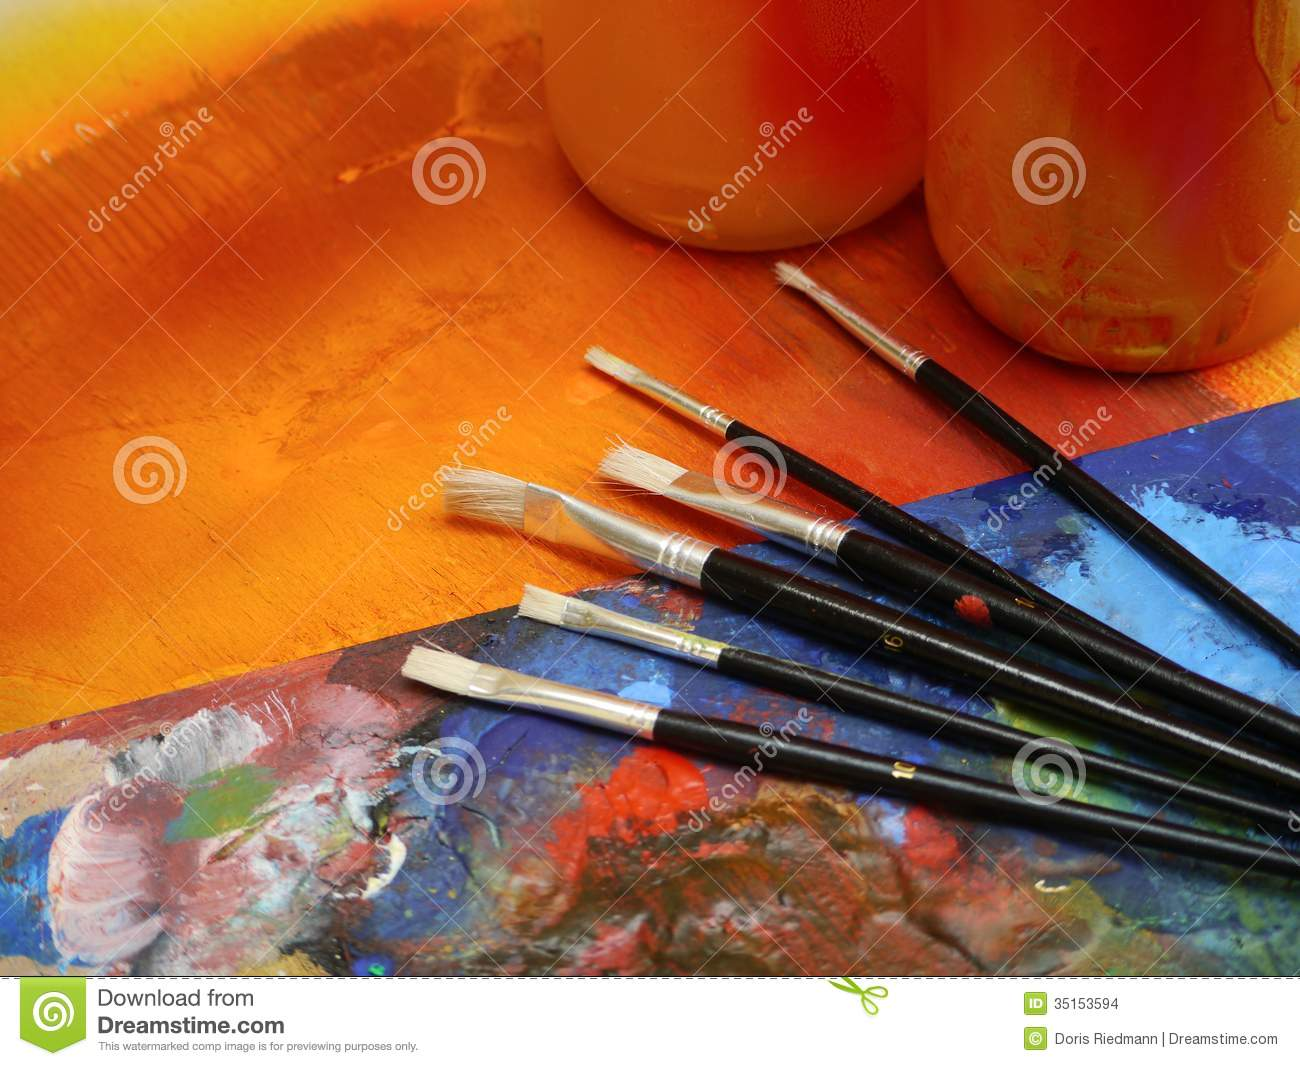 Painting drawing artist tools painting fun stock photo 35153594 megapixl